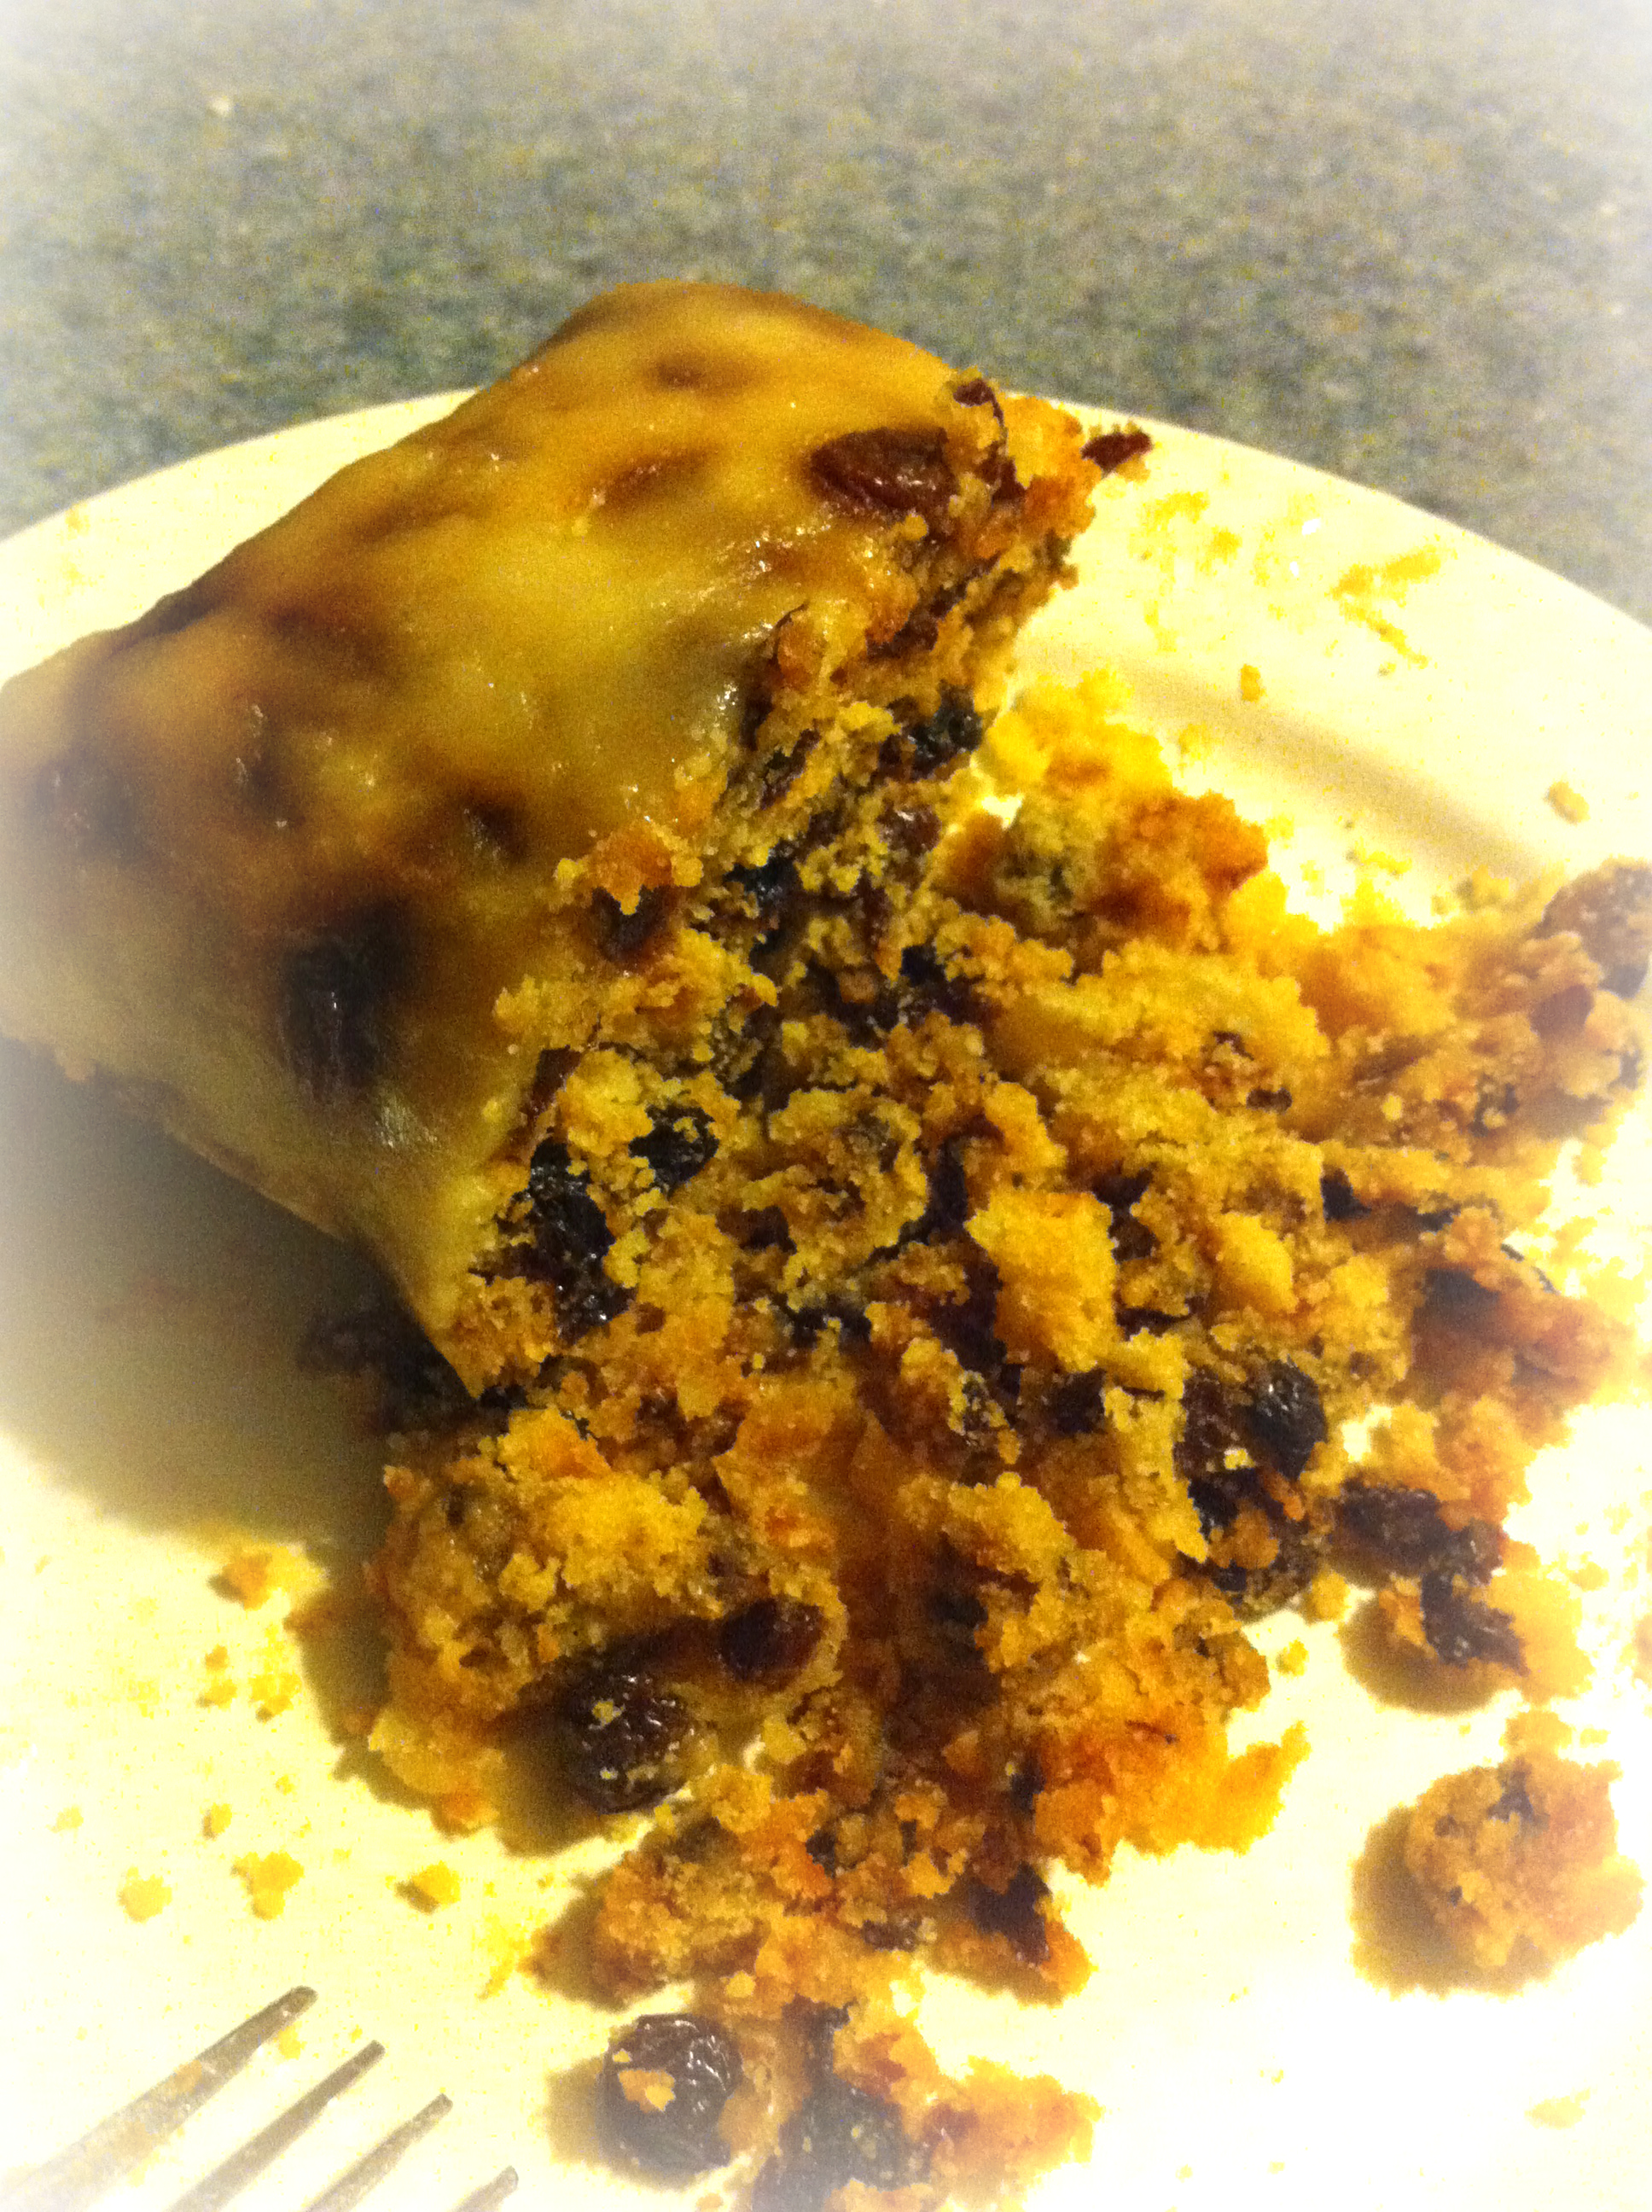 Week 7 – Spotted Dick (or Pimply Richard in polite company!)